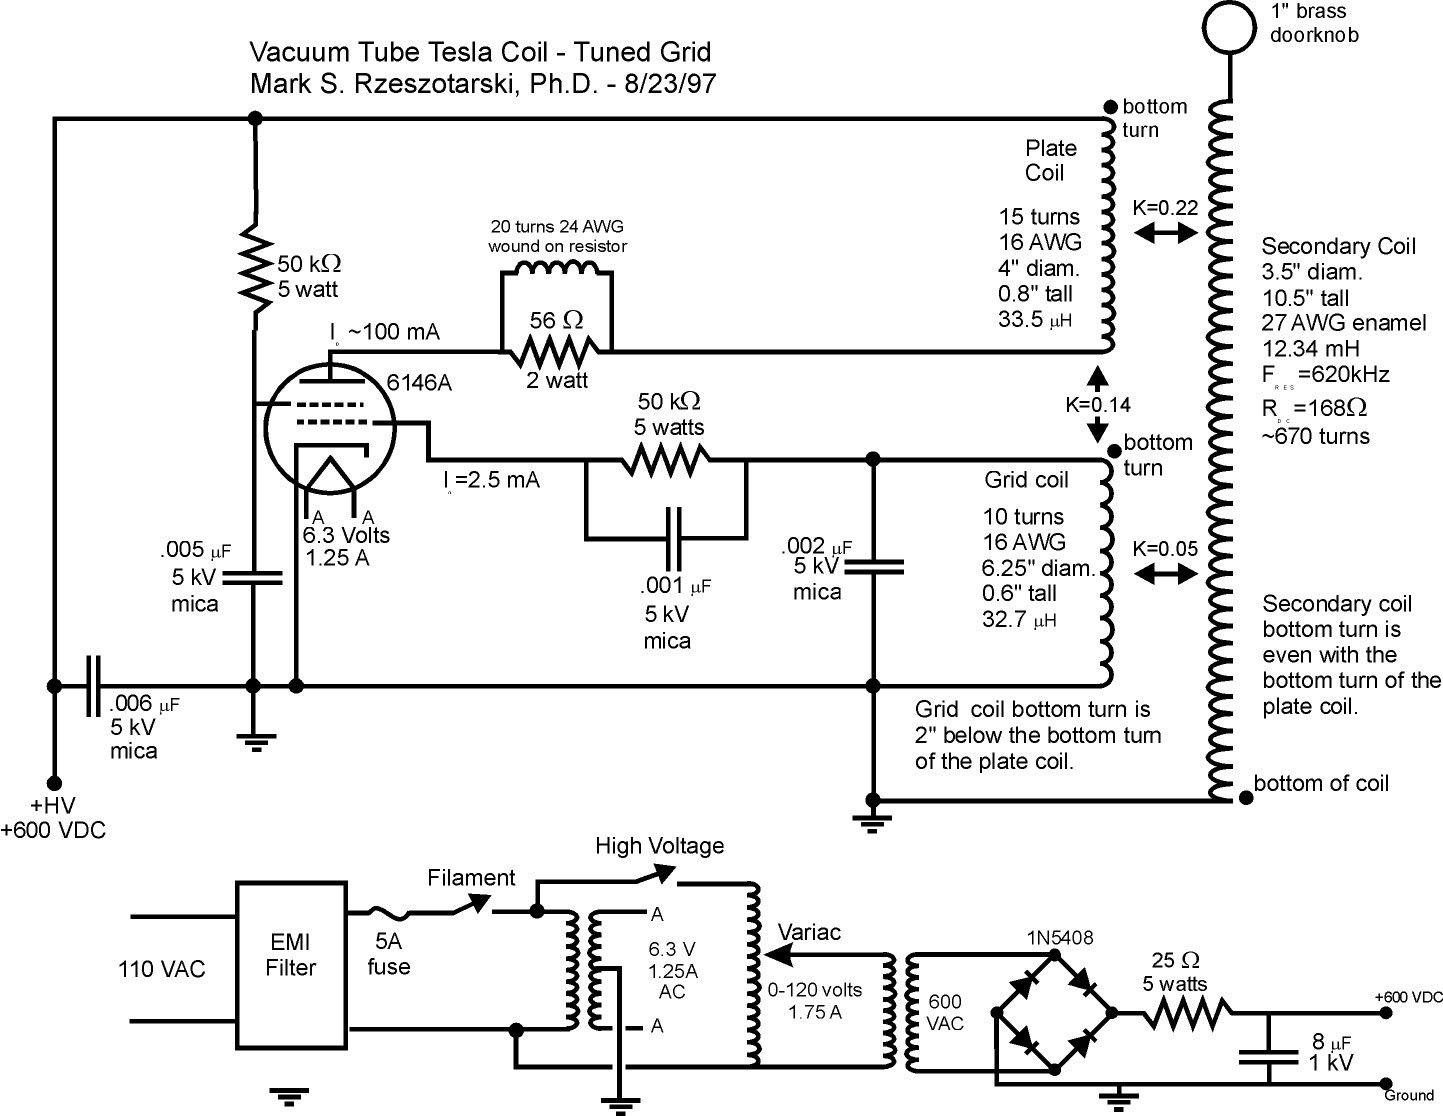 hight resolution of dc tesla coil wiring diagram wiring library additional information can be extracted from the original schematic